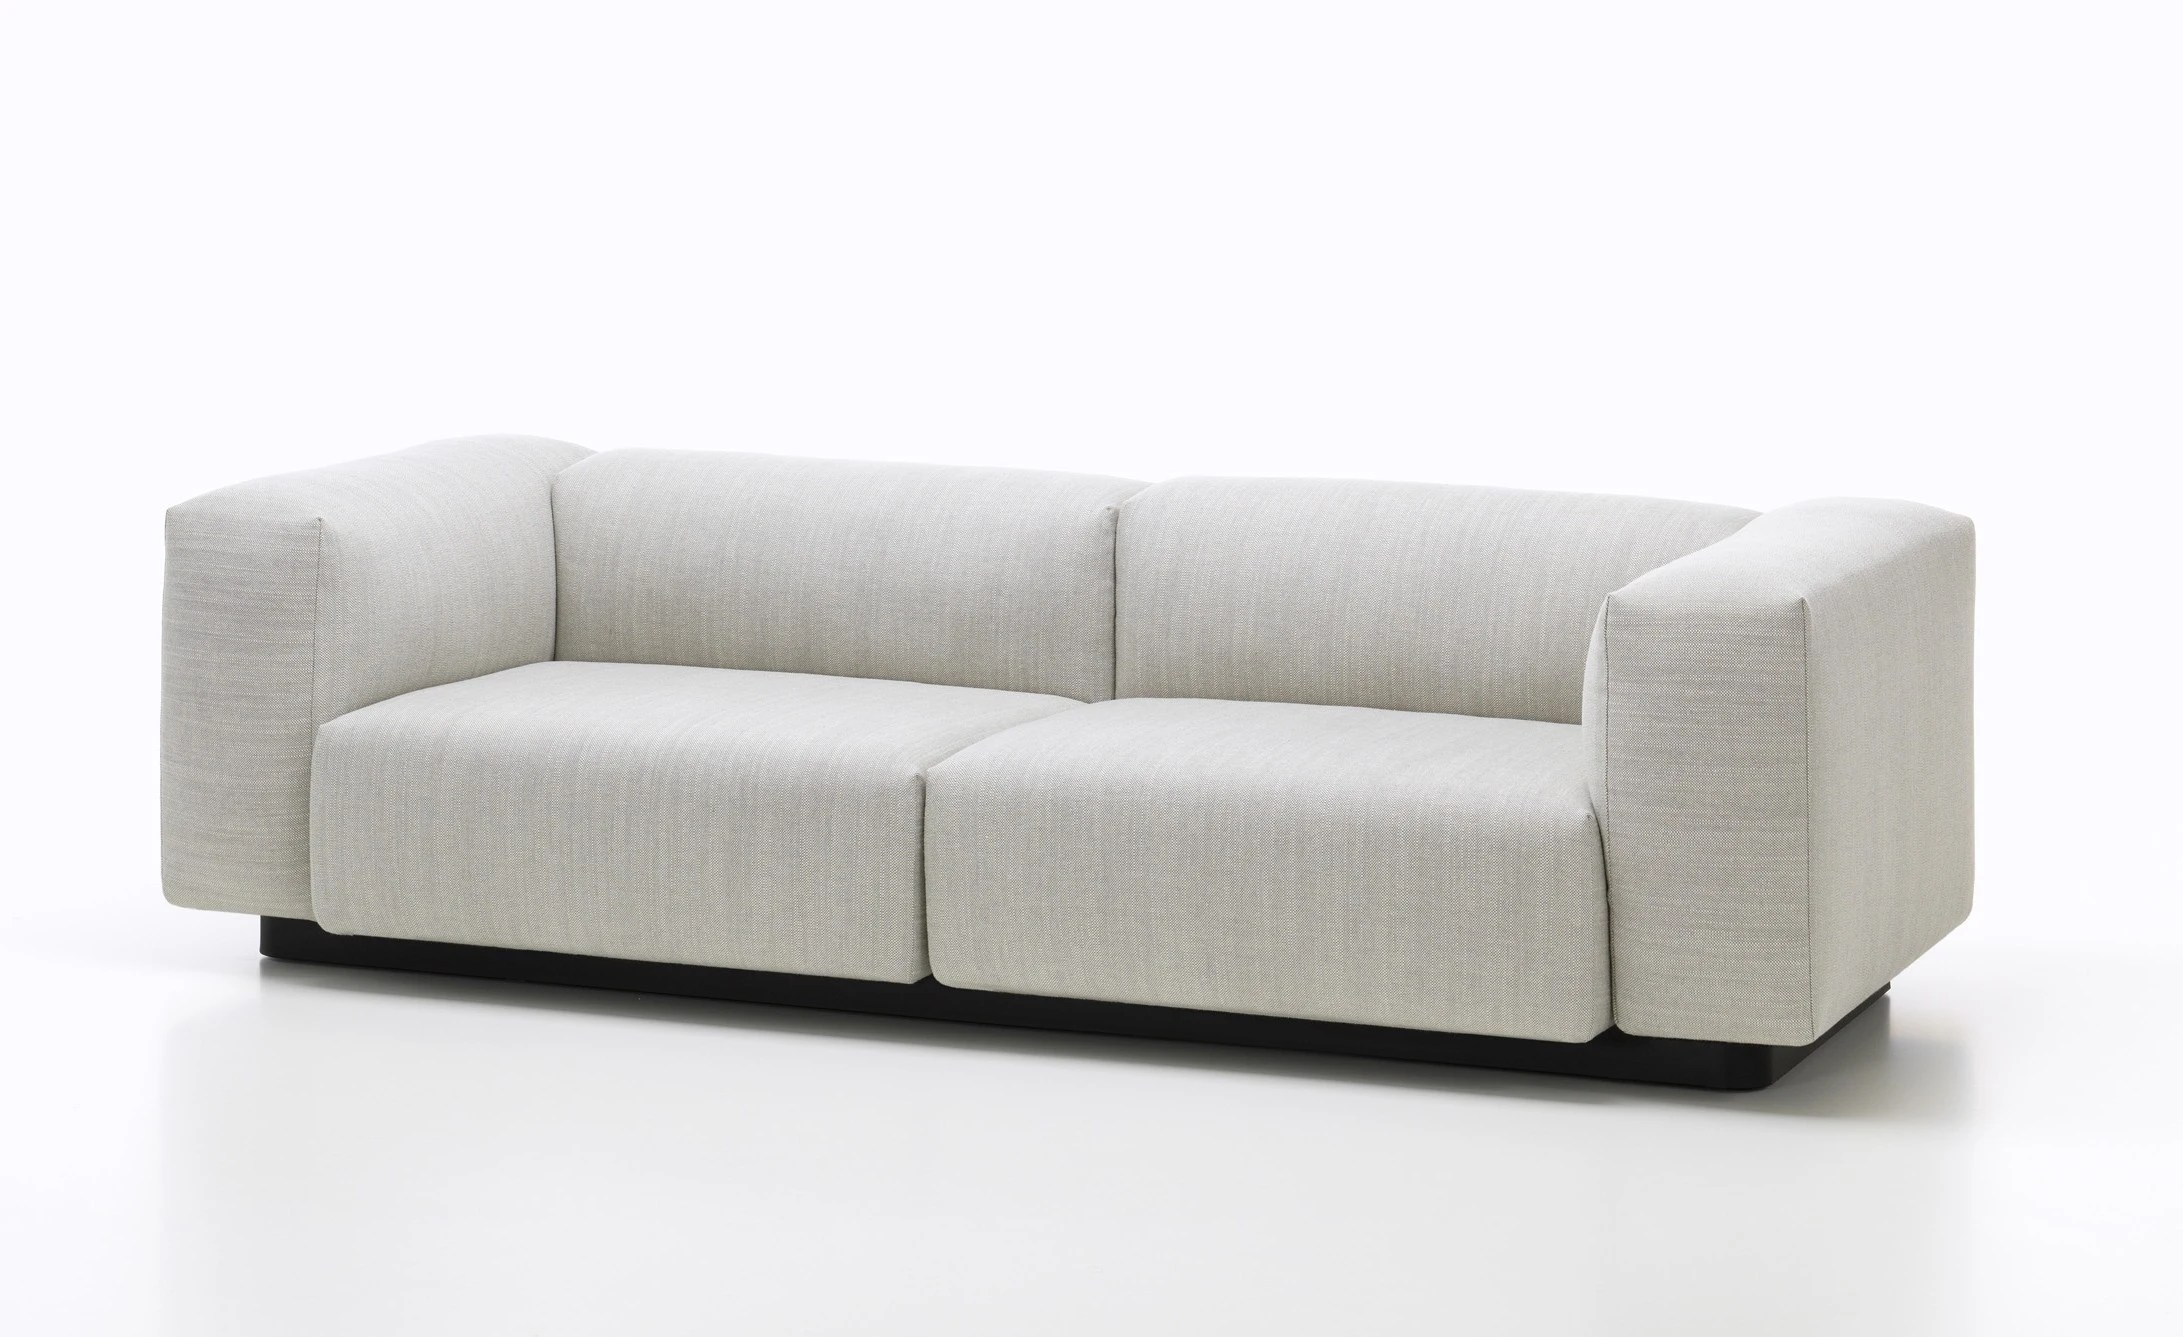 Cheap Modular Lounges Vitra Soft Modular Sofa